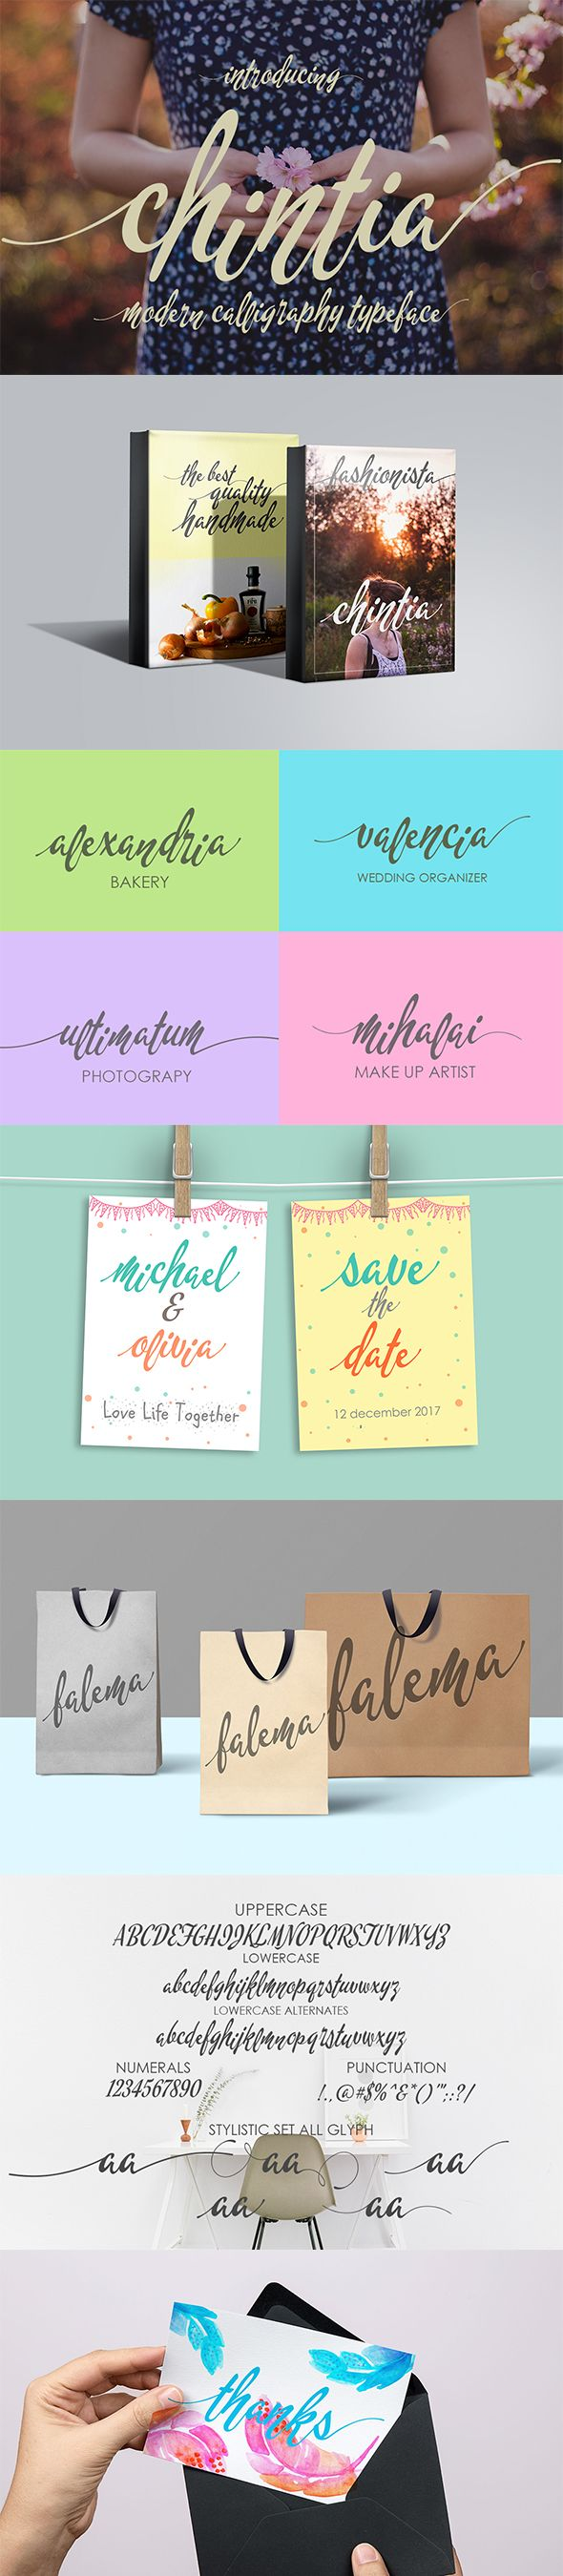 cursive fonts for wedding cards%0A Logos